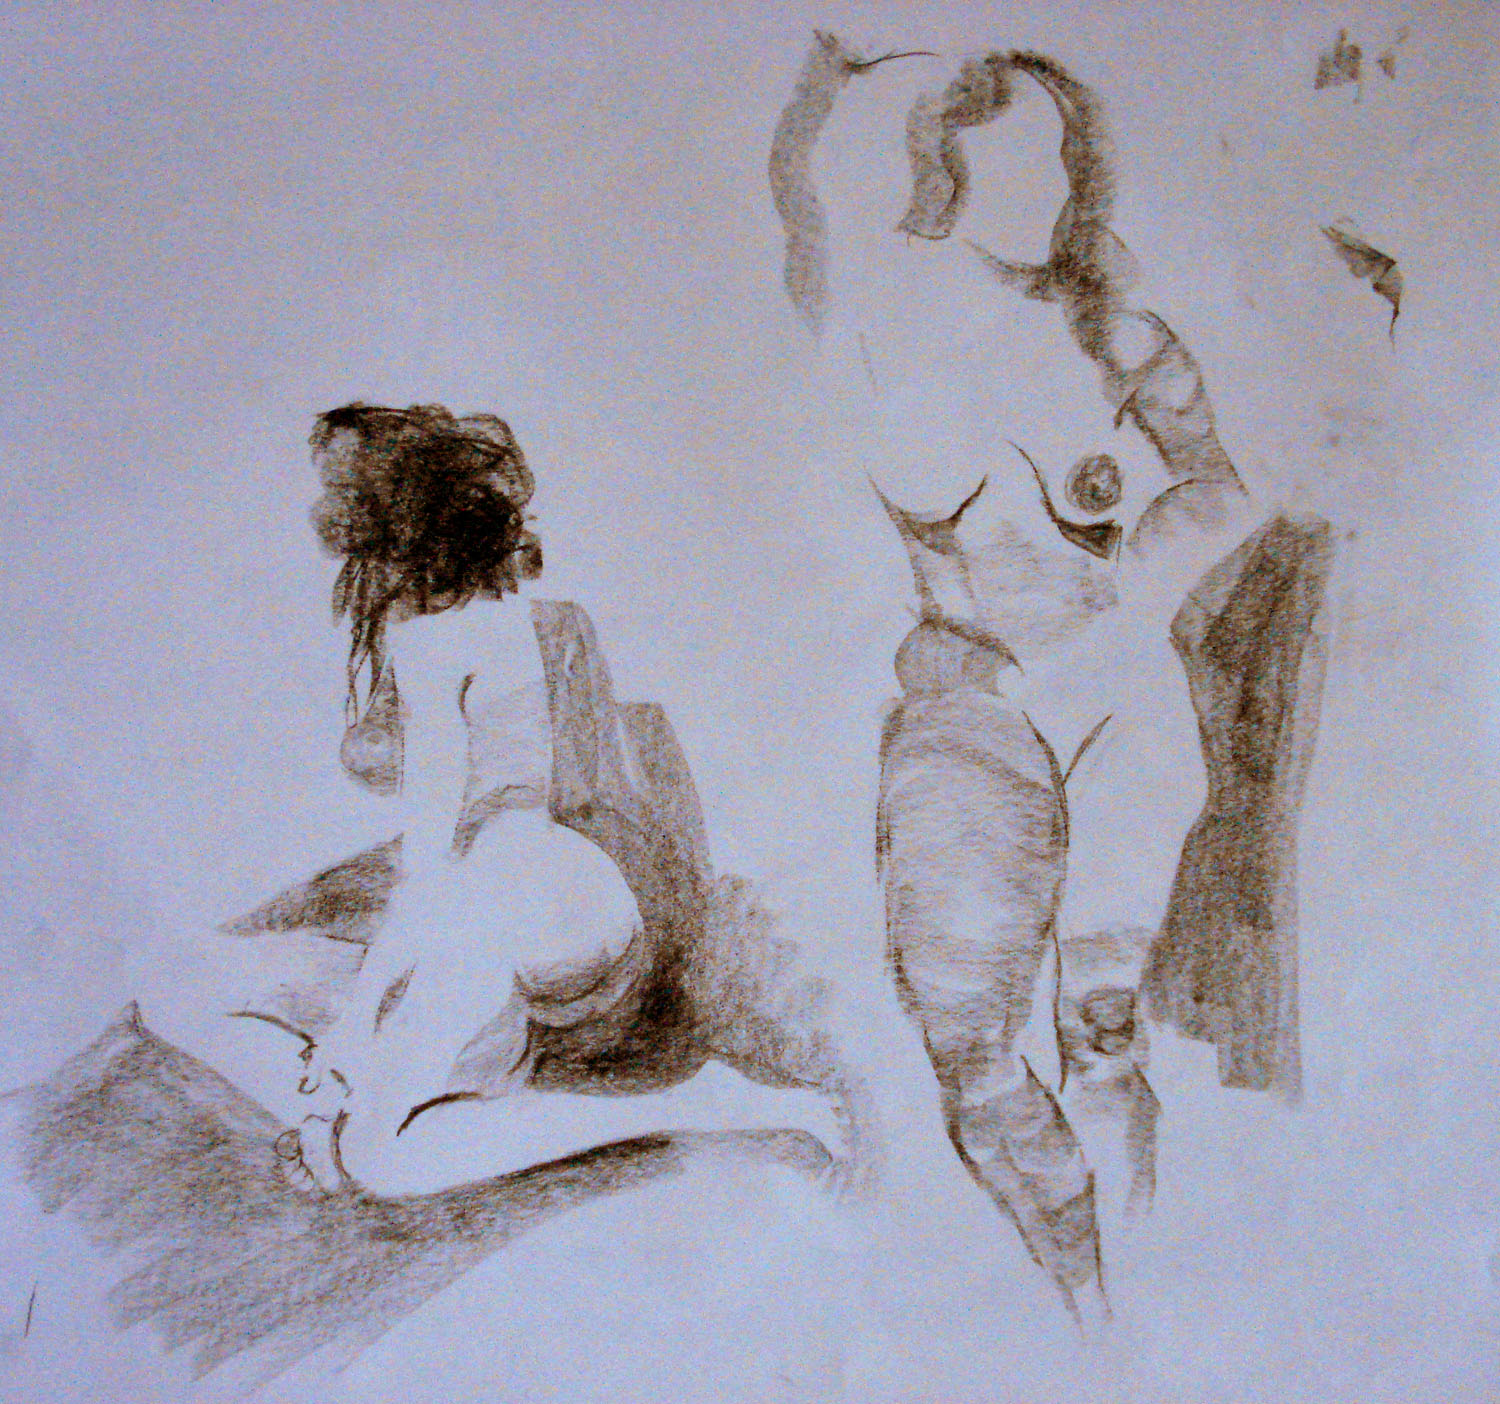 2 sketches from one model